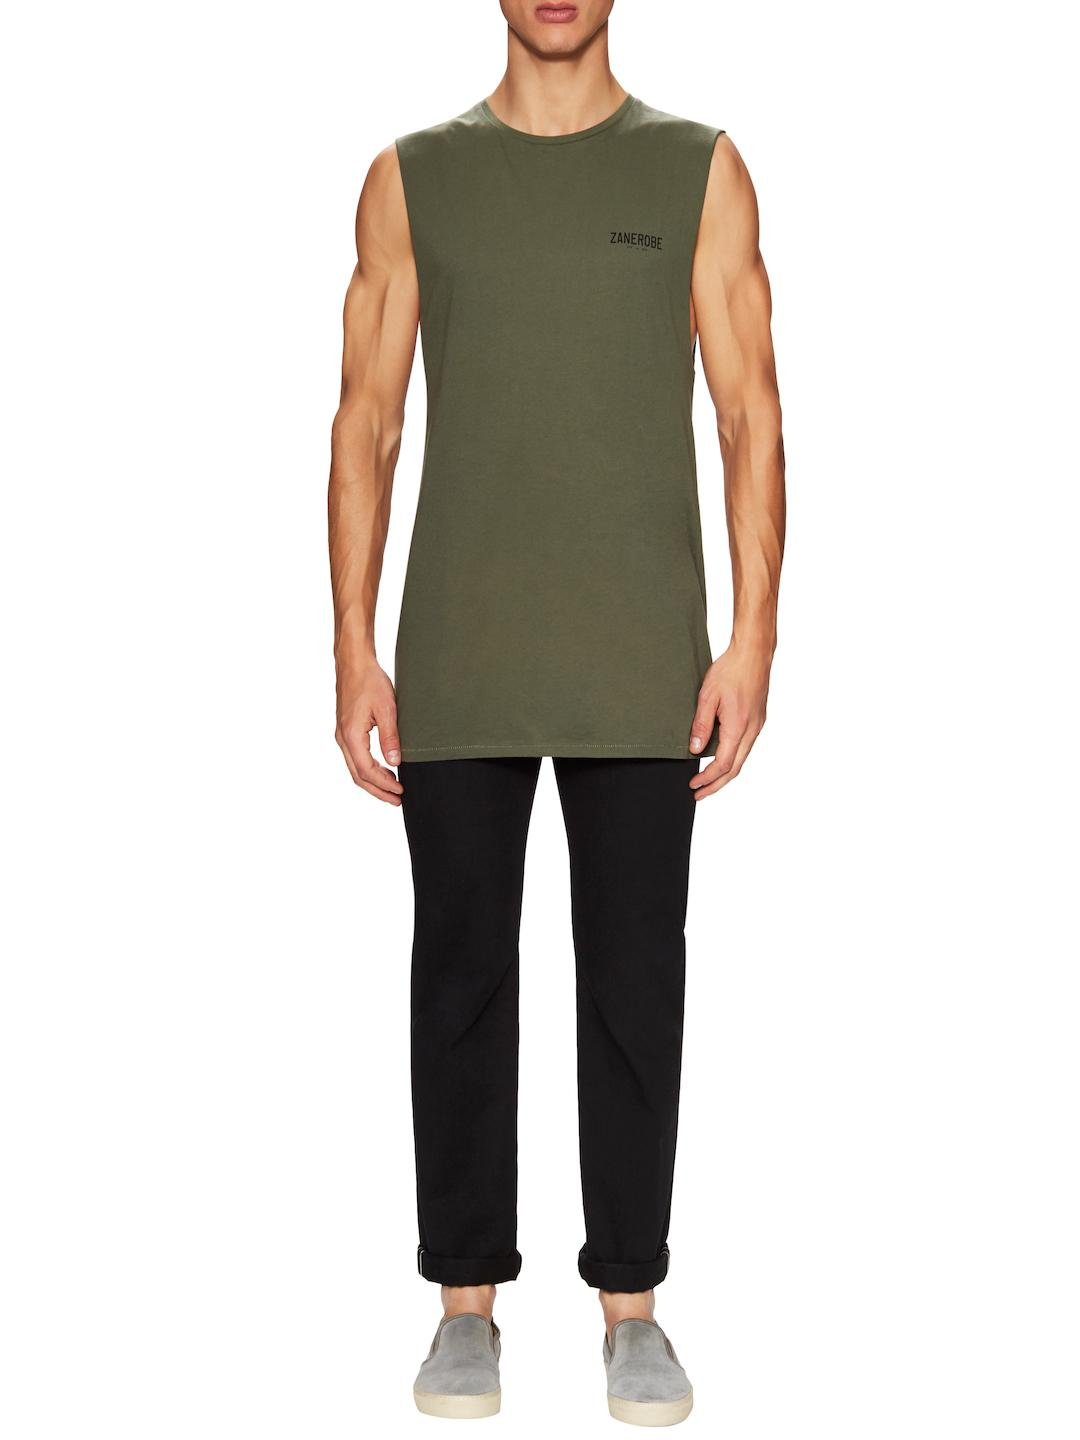 55a57720d578d Lyst - Zanerobe Cotton Tall Muscle Tank Top in Green for Men